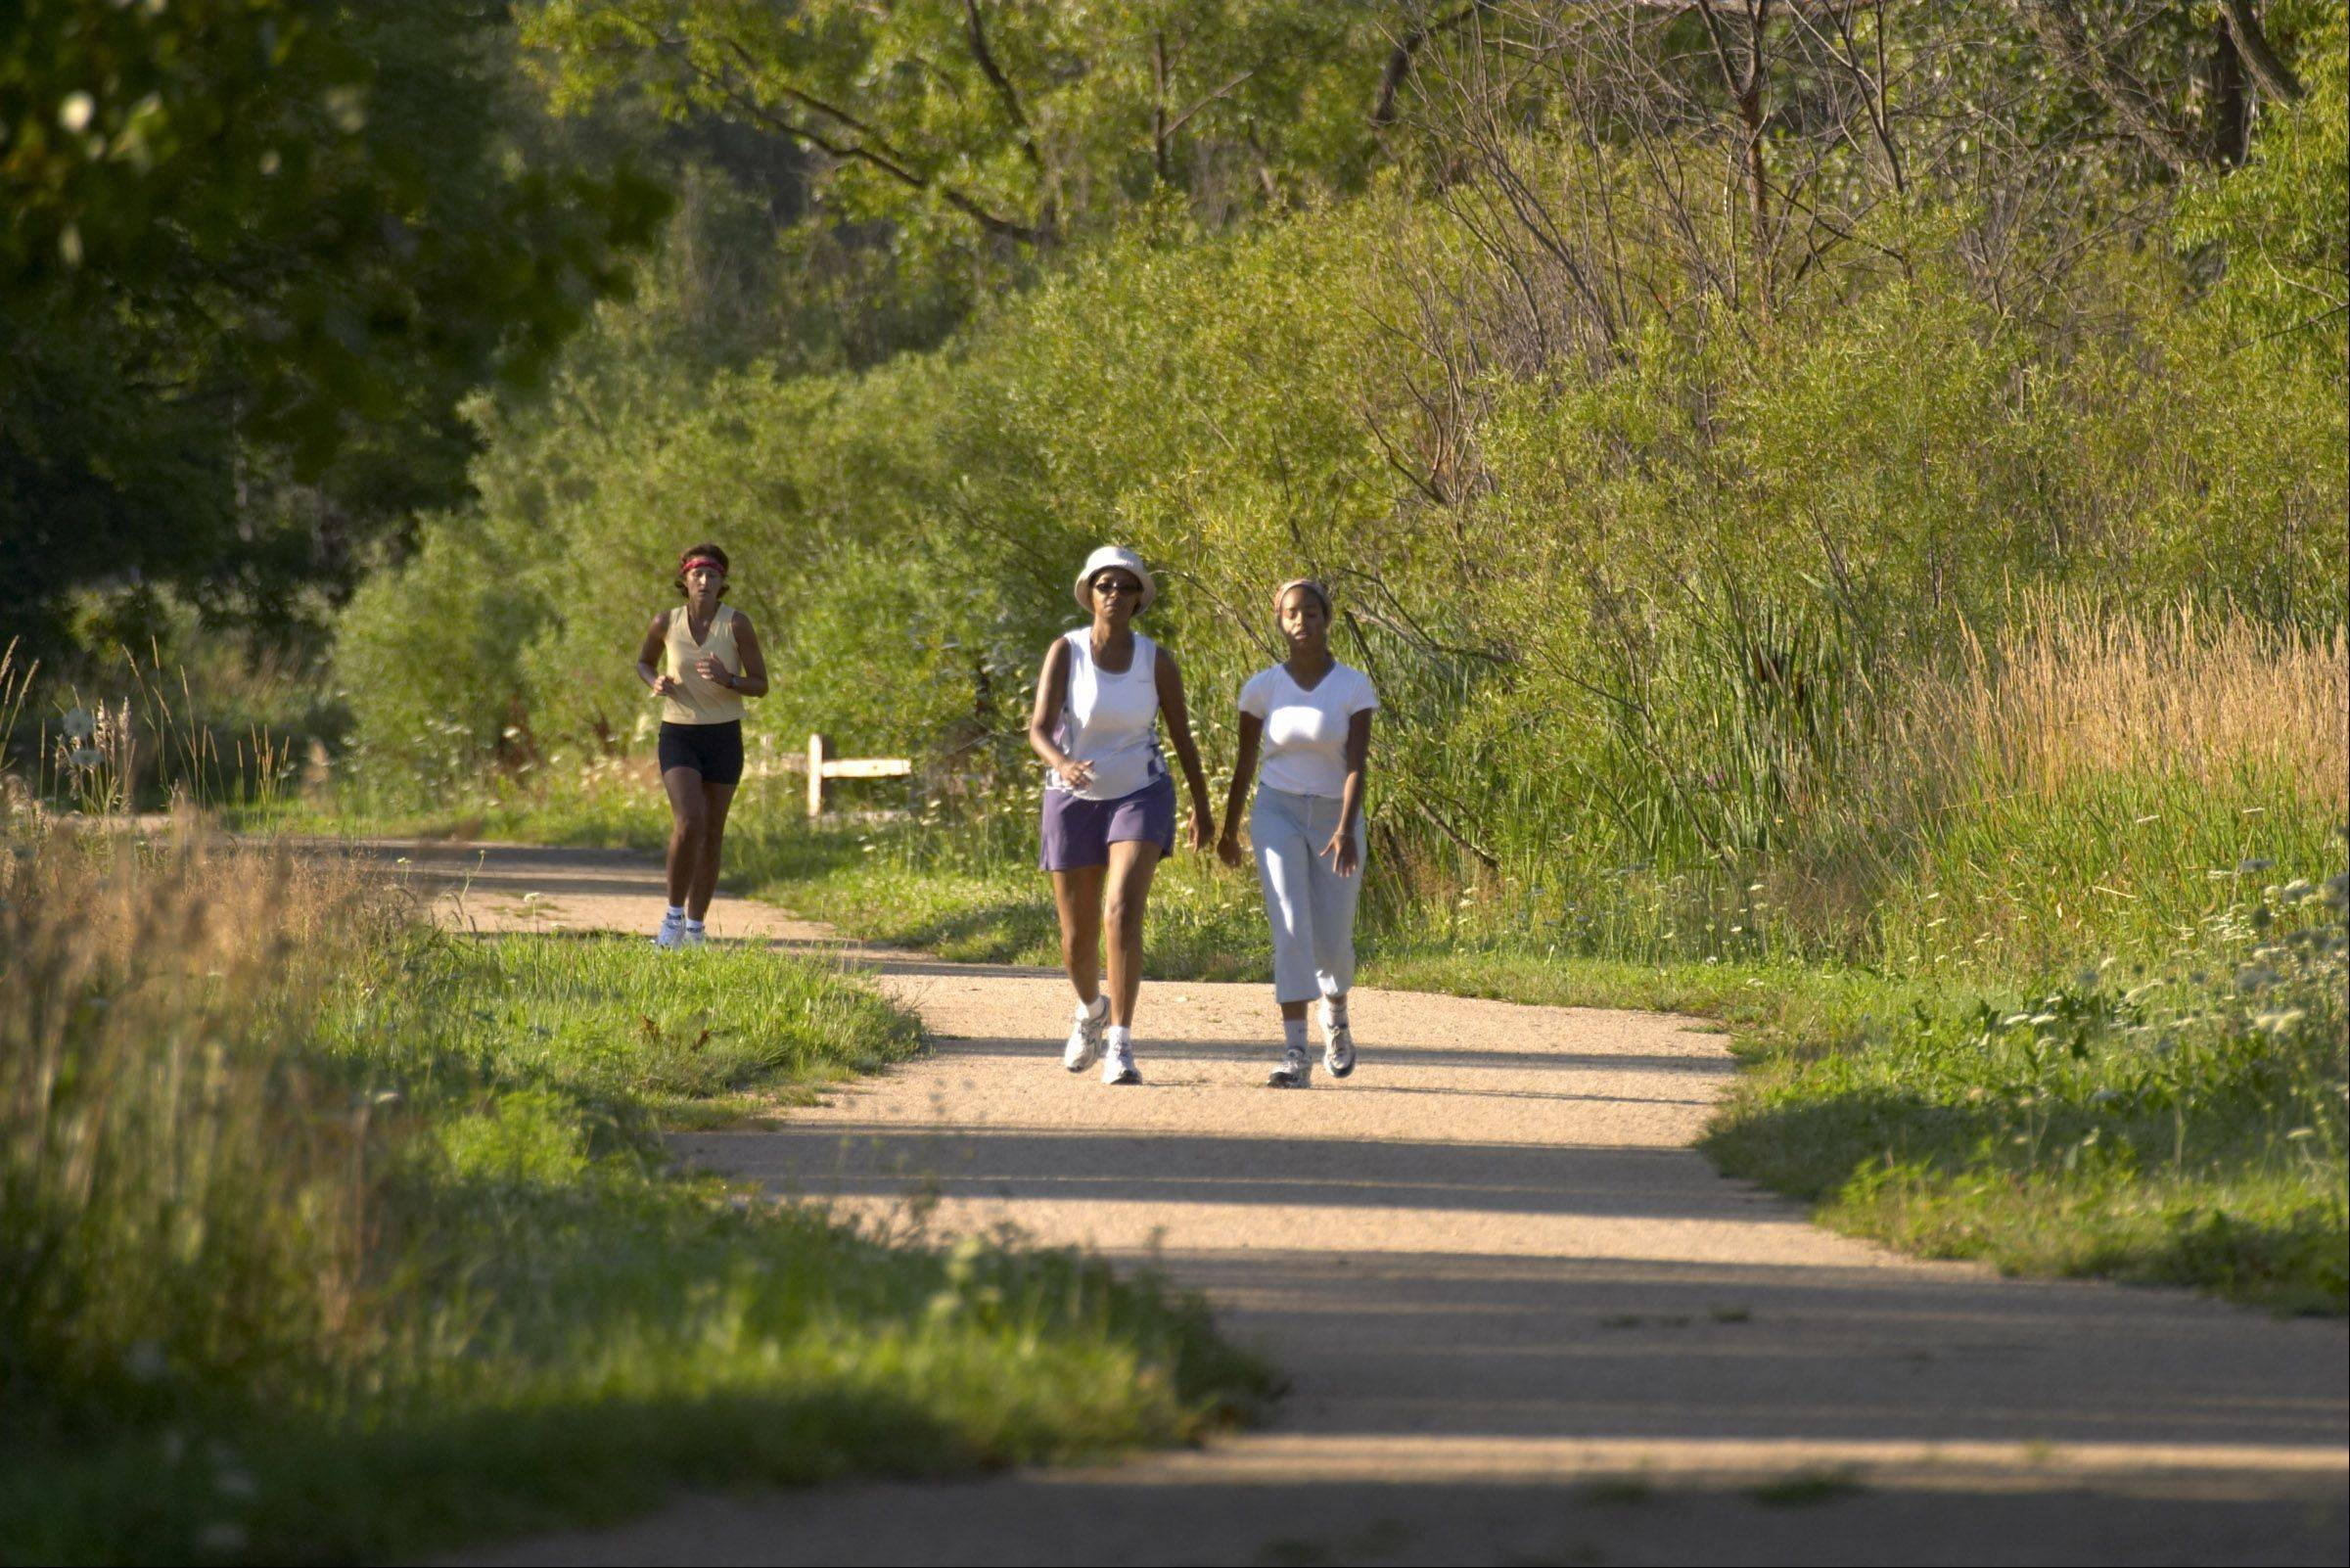 Hikers using the Middlefork Savannah trails near Lake Forest.